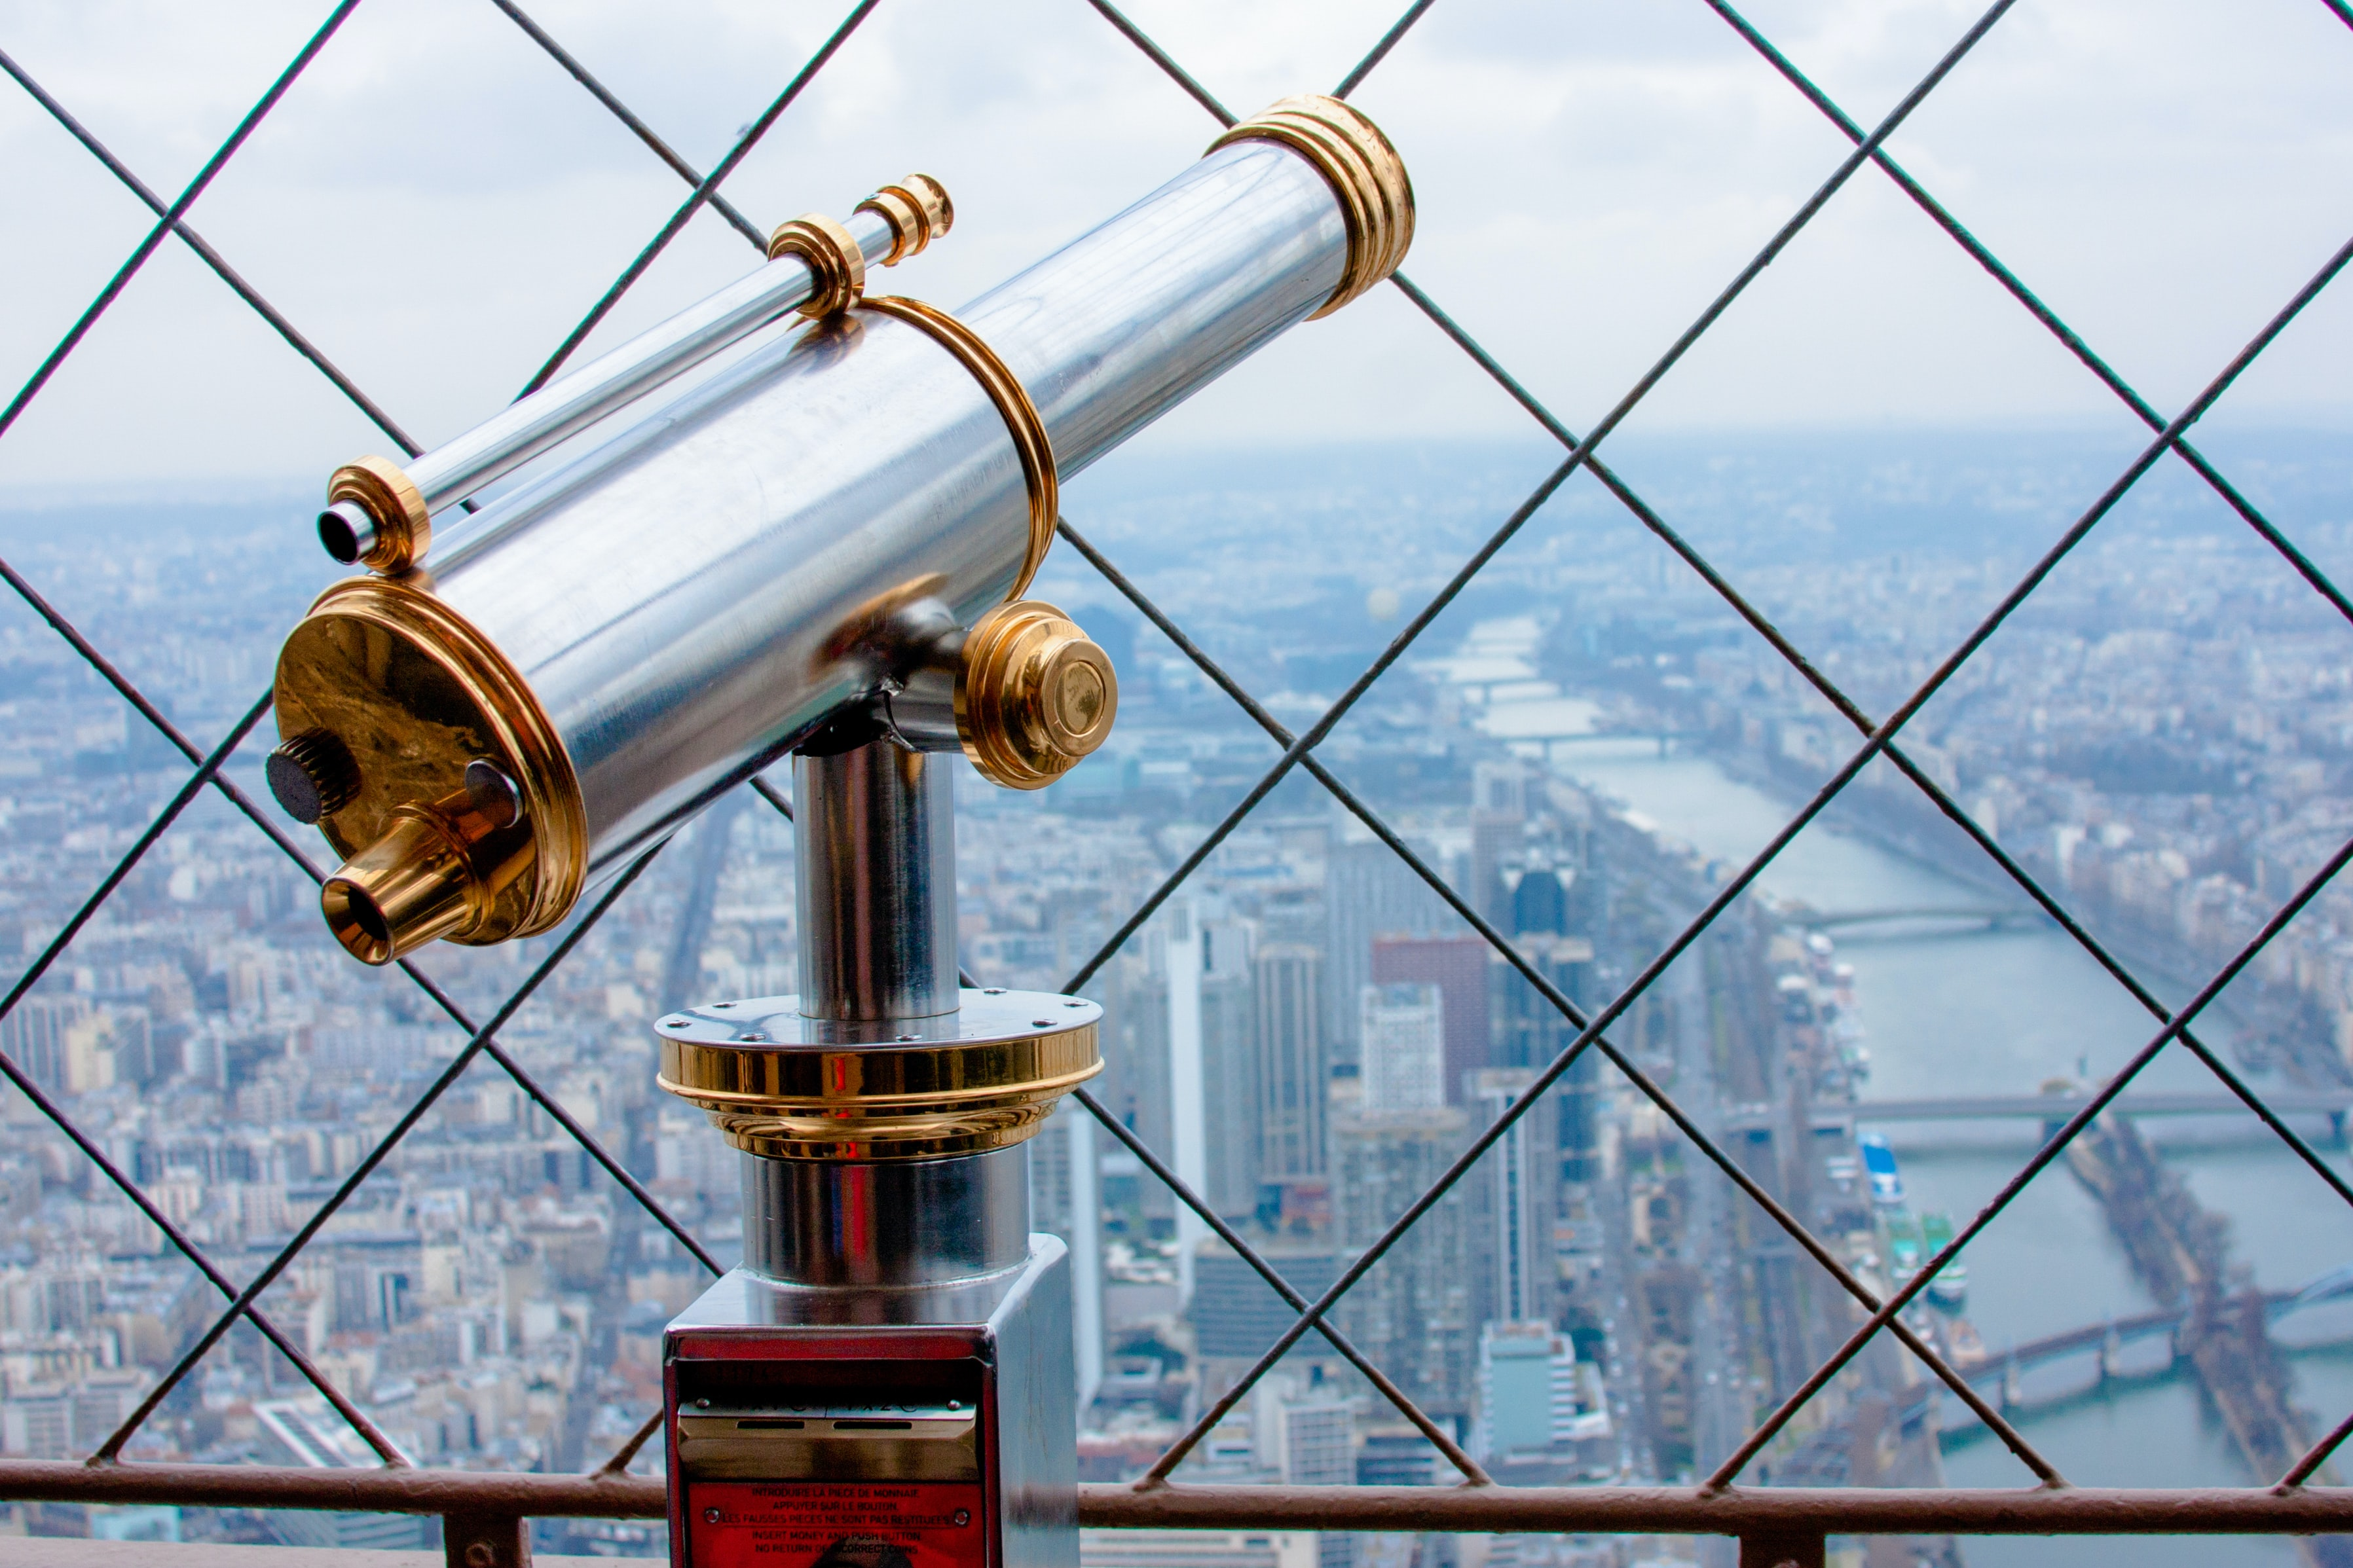 gray and brass-colored tower telescope